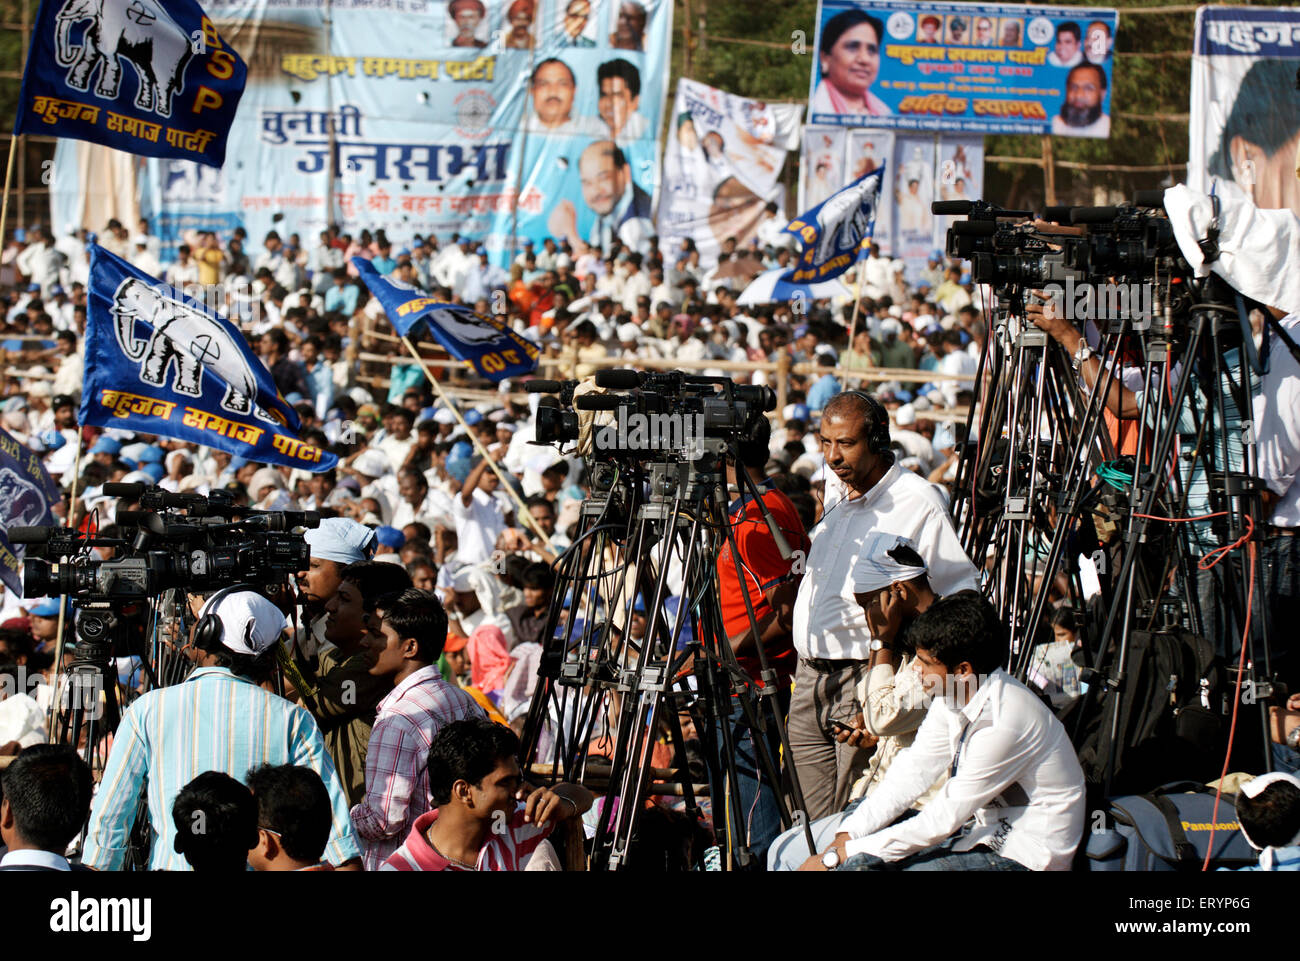 Cameramen representing different news channels electronic media during Bahujan Samajwadi Party election campaign - Stock Image